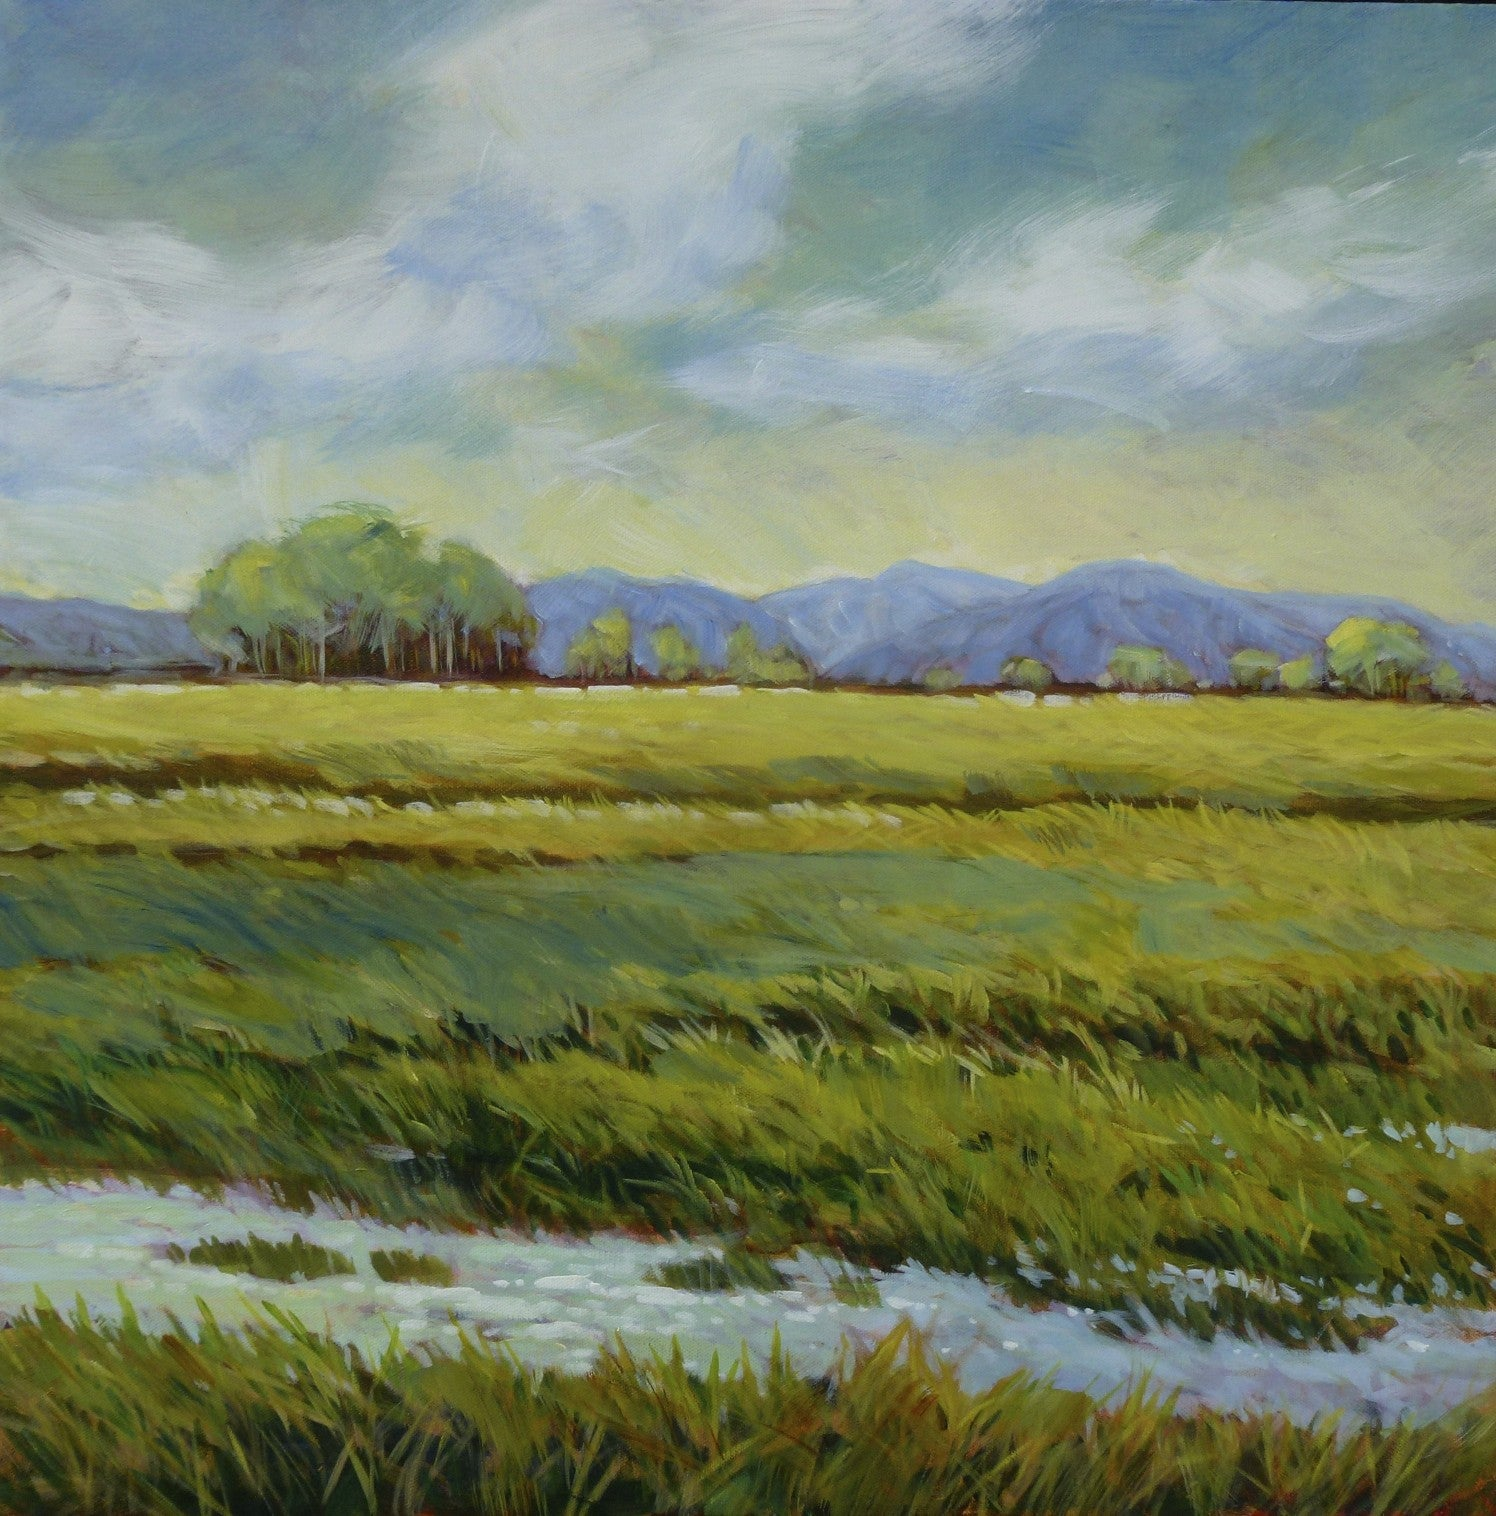 Spring Field by Janice Robertson